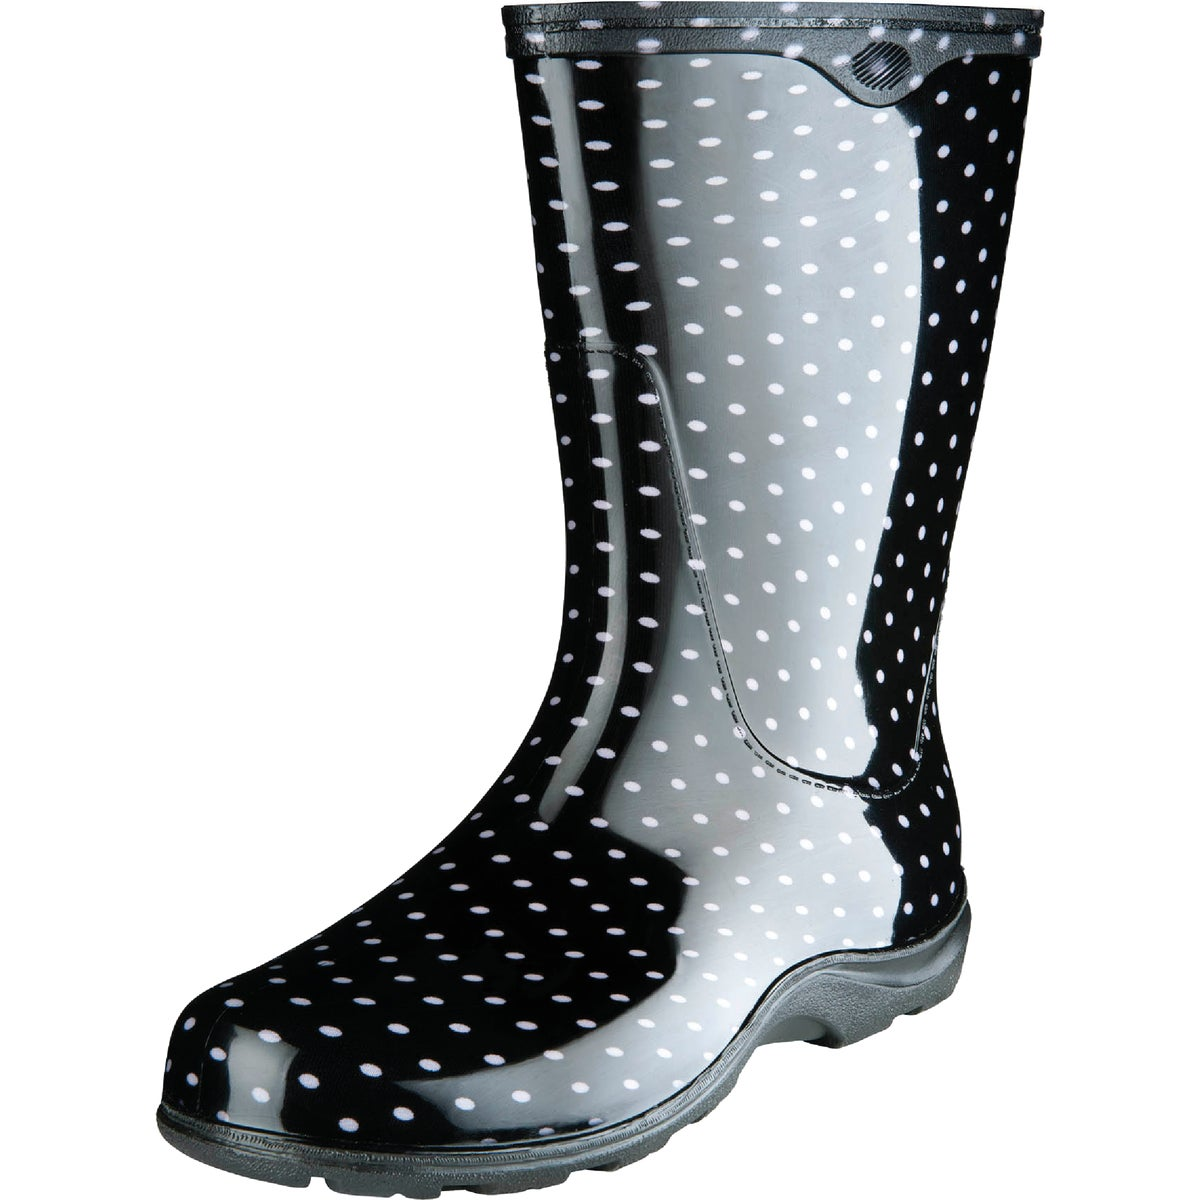 SZ 7 MID-BLACK TALLBOOT - 5002BK07 by Principle Plastics